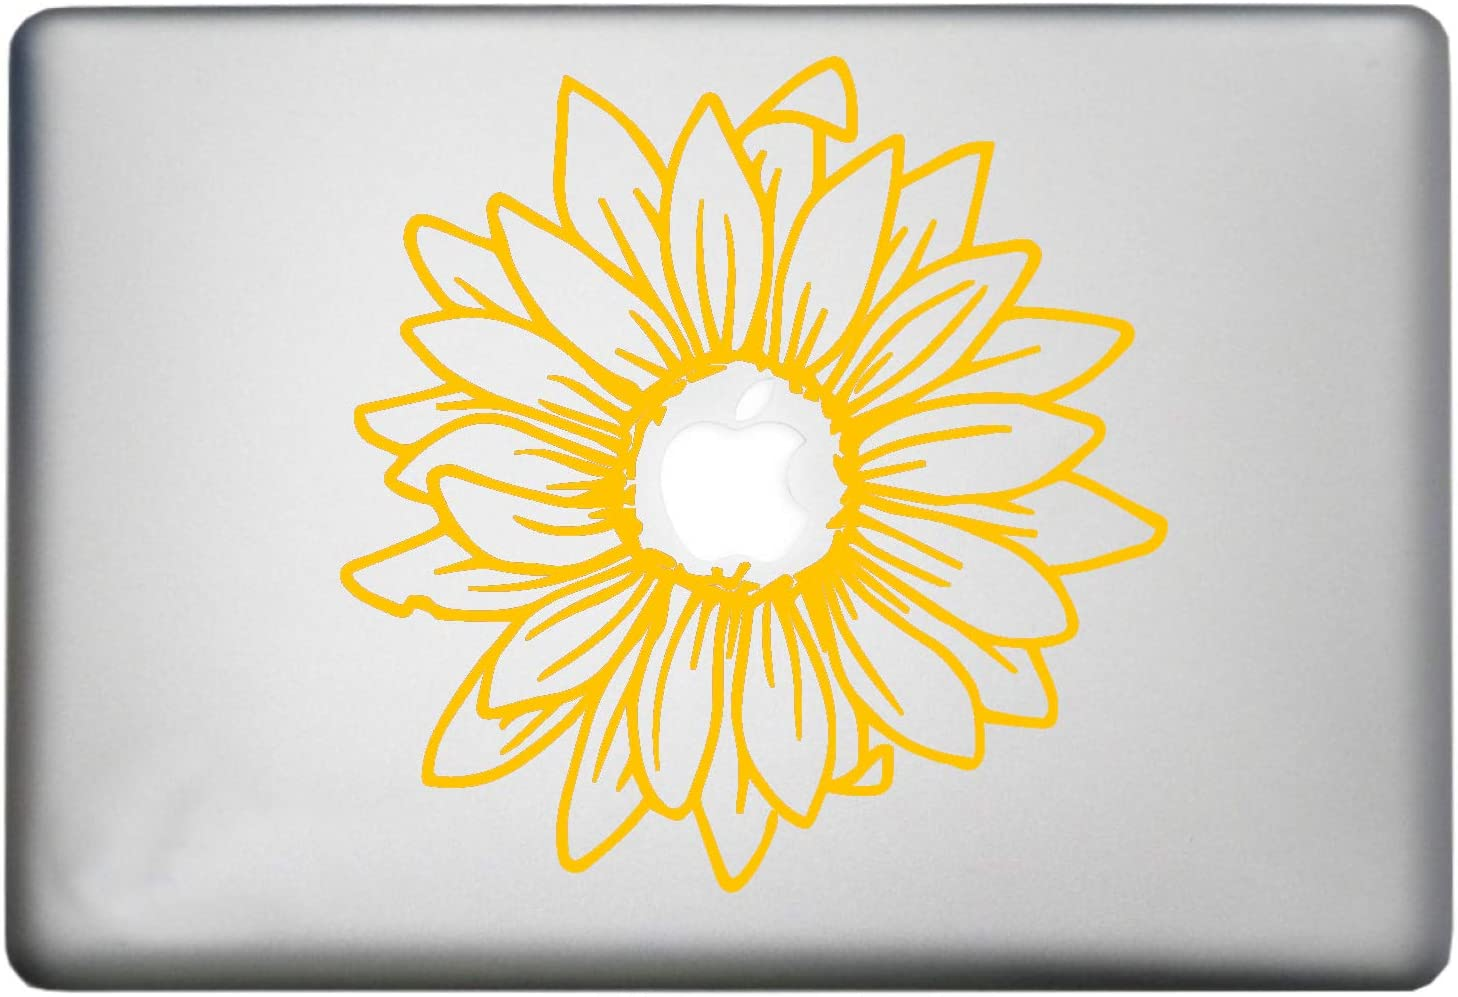 Sunflower Silhouette Laptop Sticker Decor Vinyl Decal is a Sunflower MacBook Pro Air Sticker Decor Decal. Laptop Sizes 11, 12, 13 and 15 inch Yellow